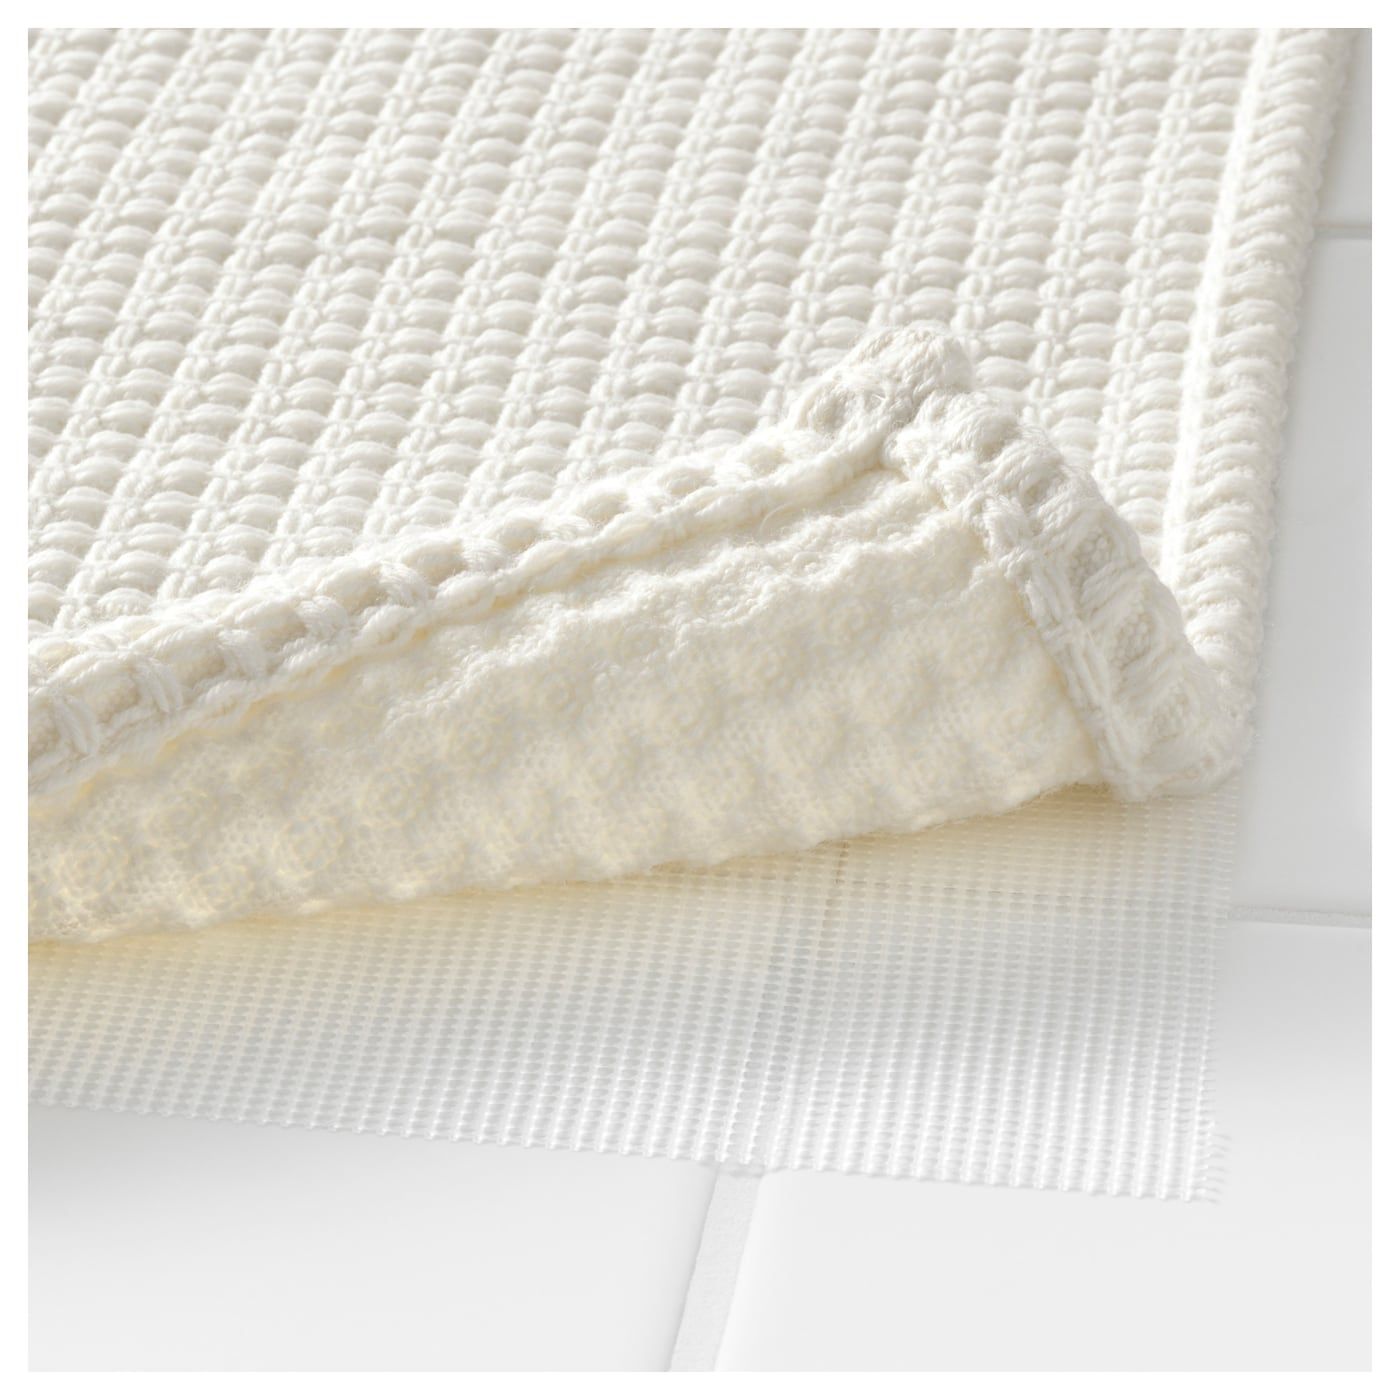 ciao ciaomat sh bth white mat and bath mats serena lily rugs